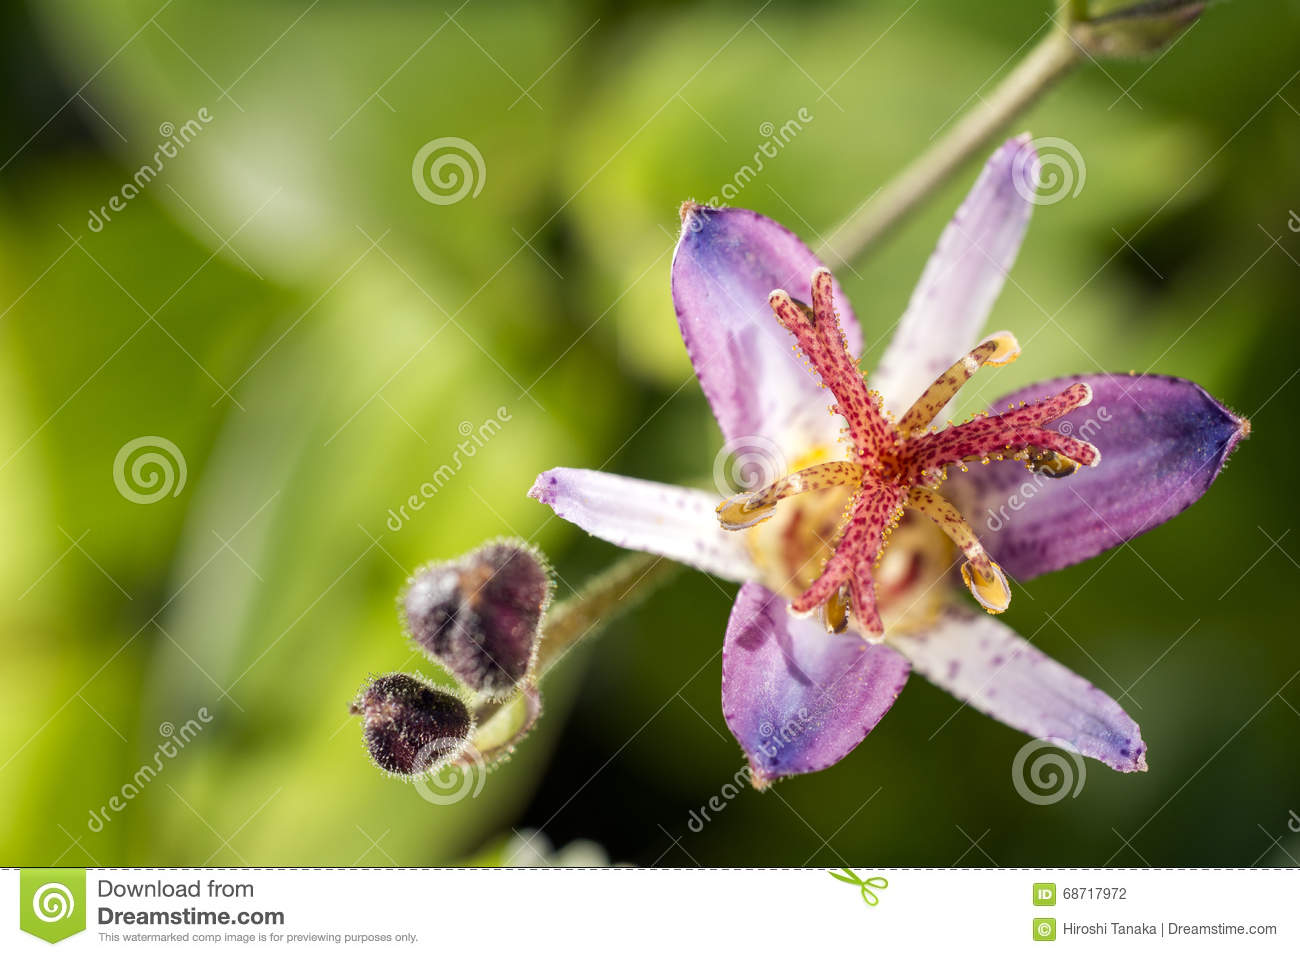 Toad lily flower stock photo image of plant bright 68717972 toad lily flower izmirmasajfo